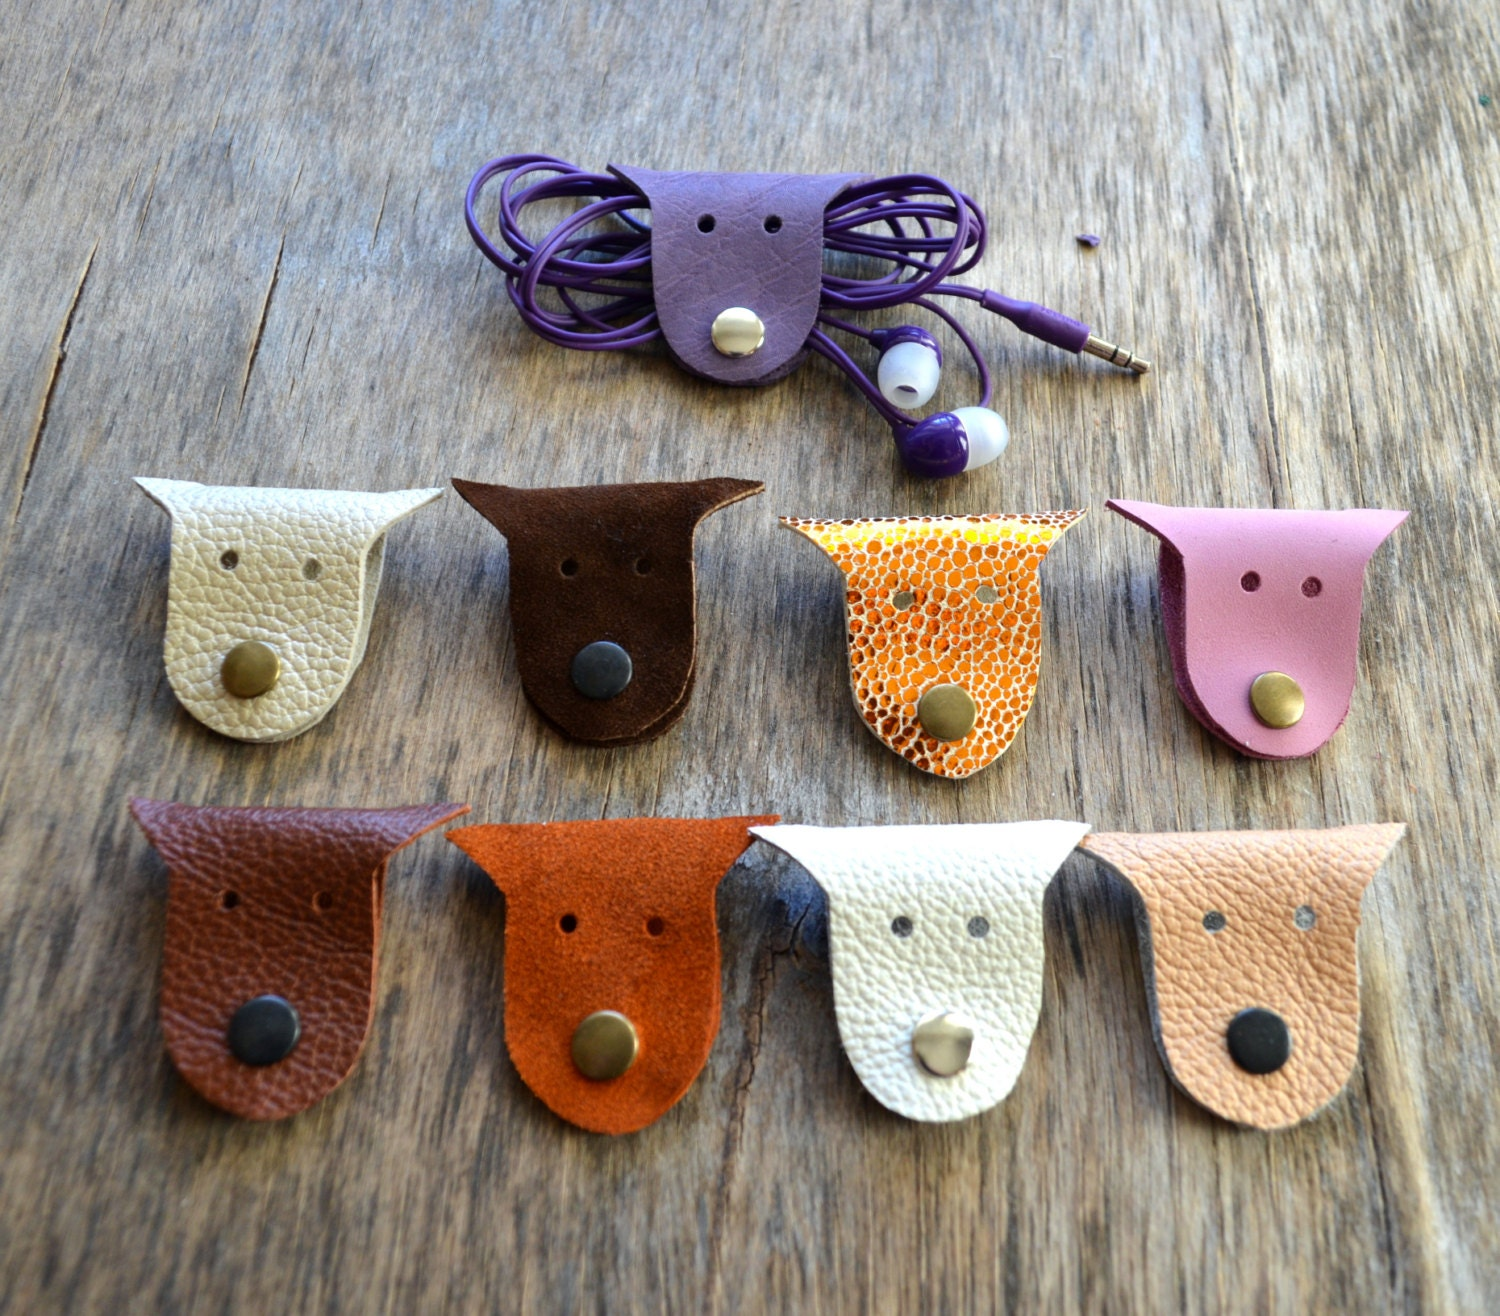 Cord Holders: Cord Holder Cord Organizer Earbud Holder Leather By